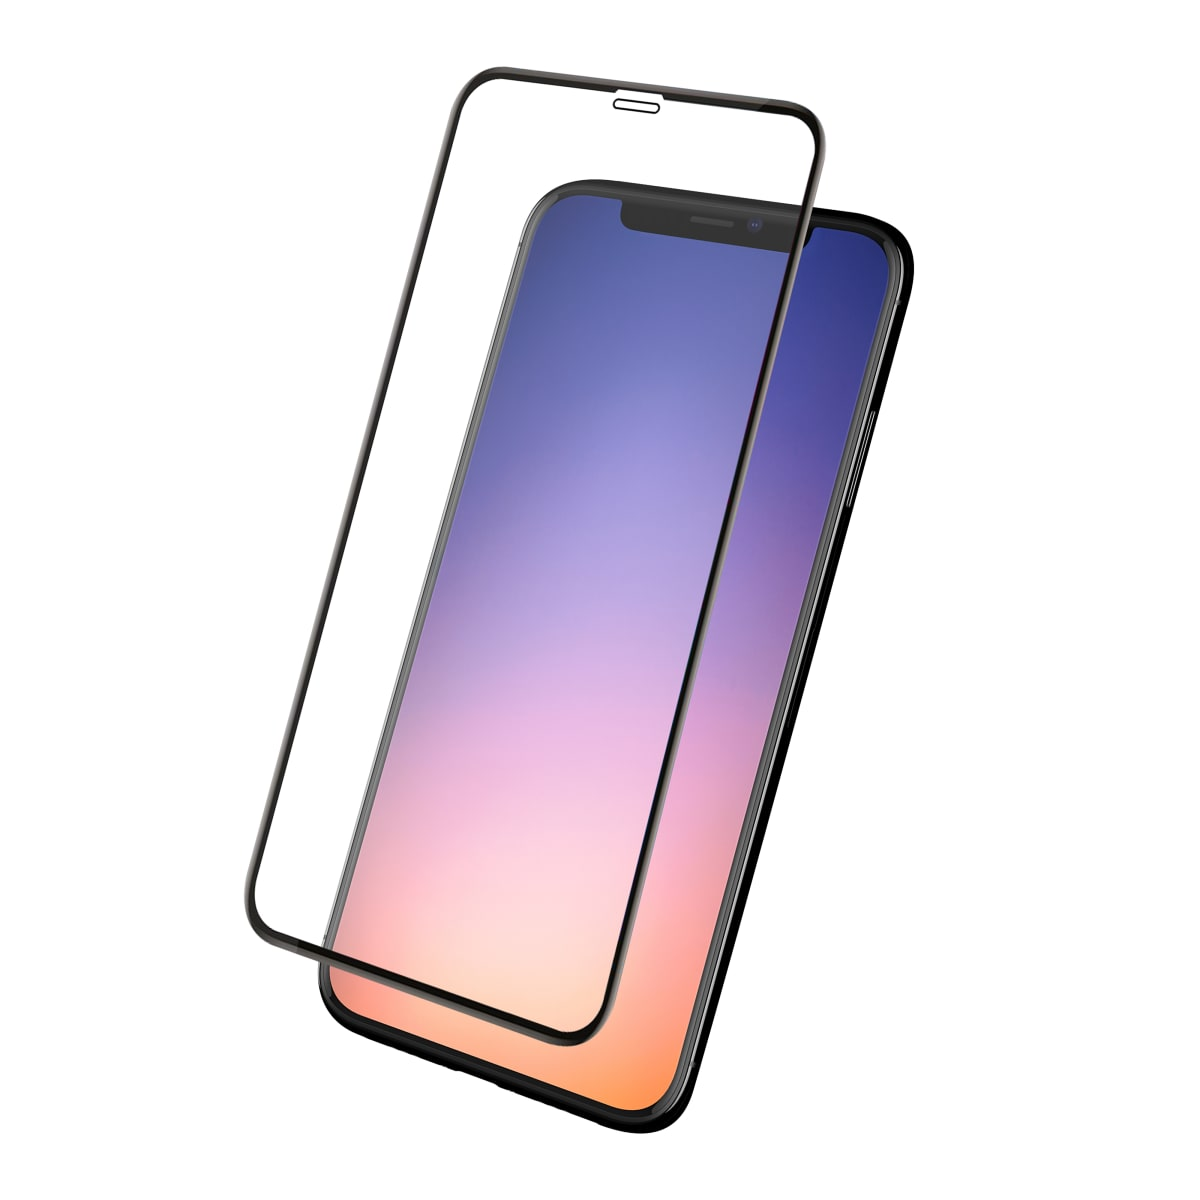 Full glass protection for iPhone 11 Pro